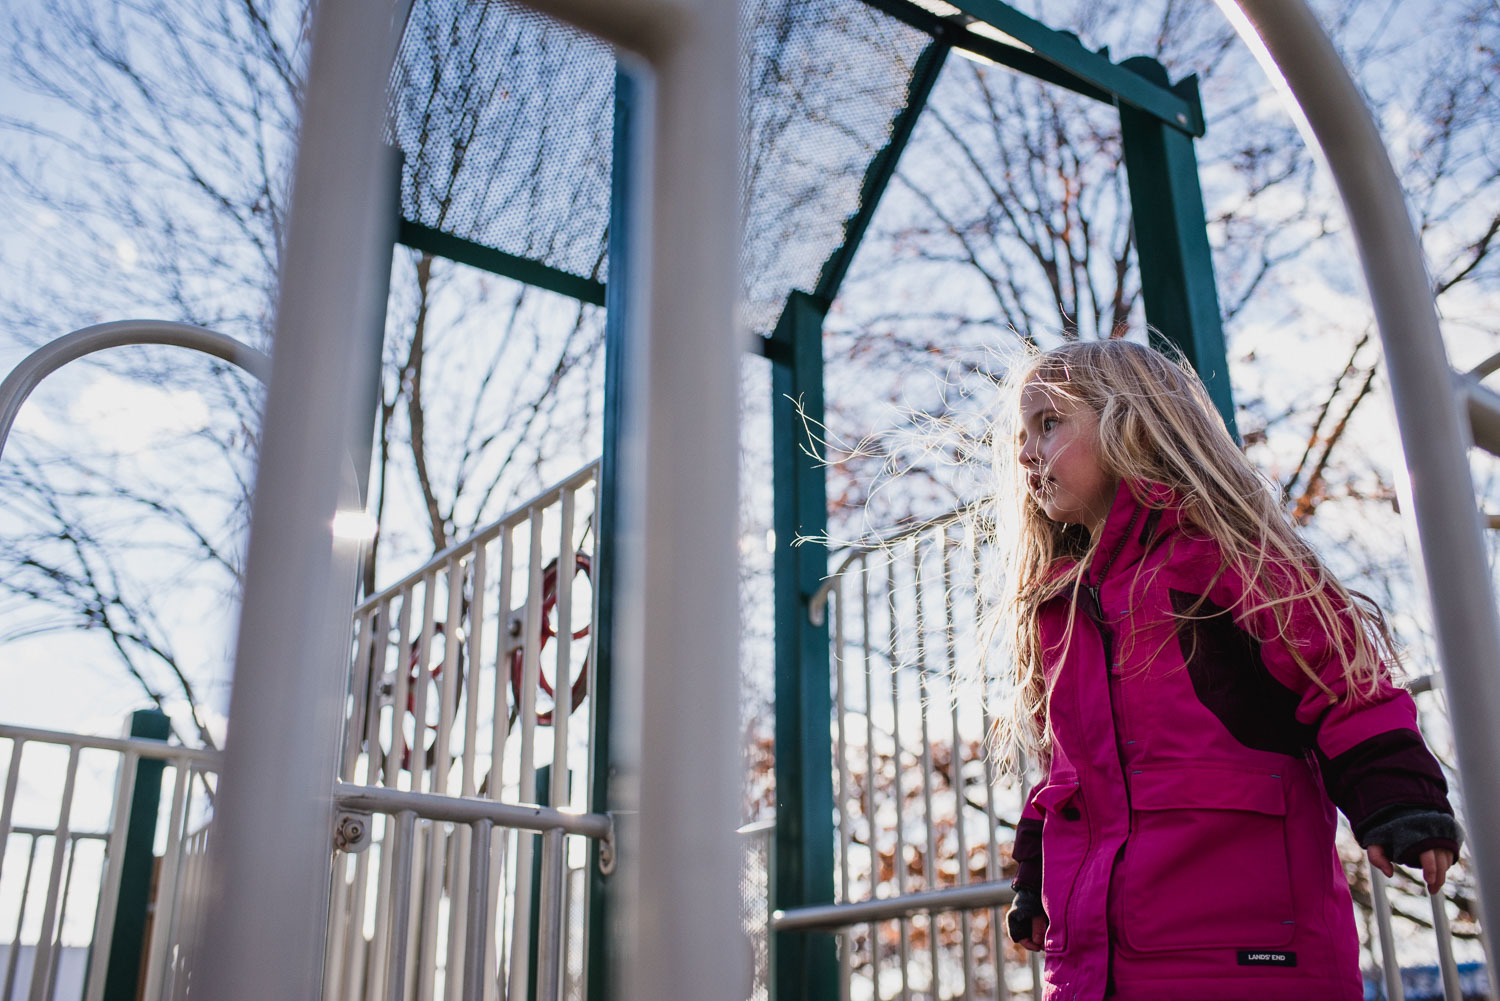 A little girl walking on playground equipment on a cold day.